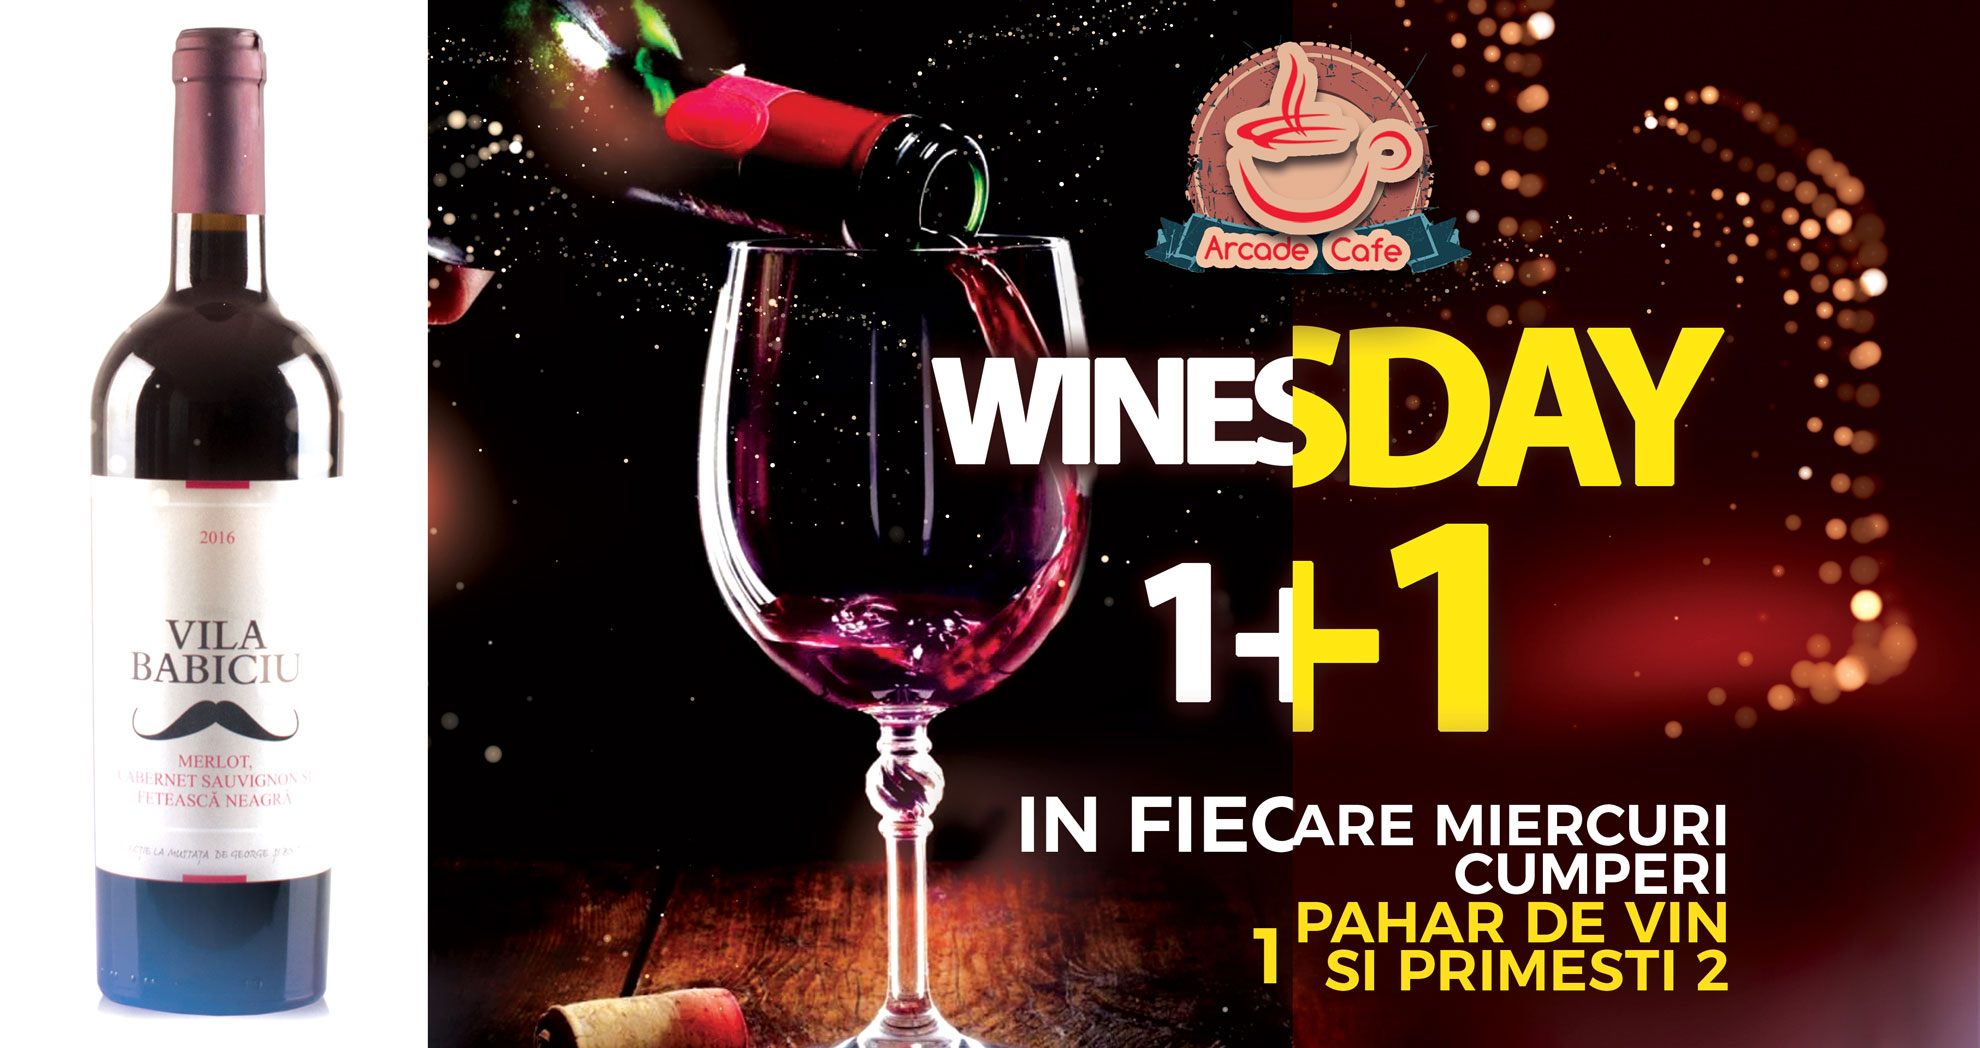 WINESDAY @ Arcade Cafe